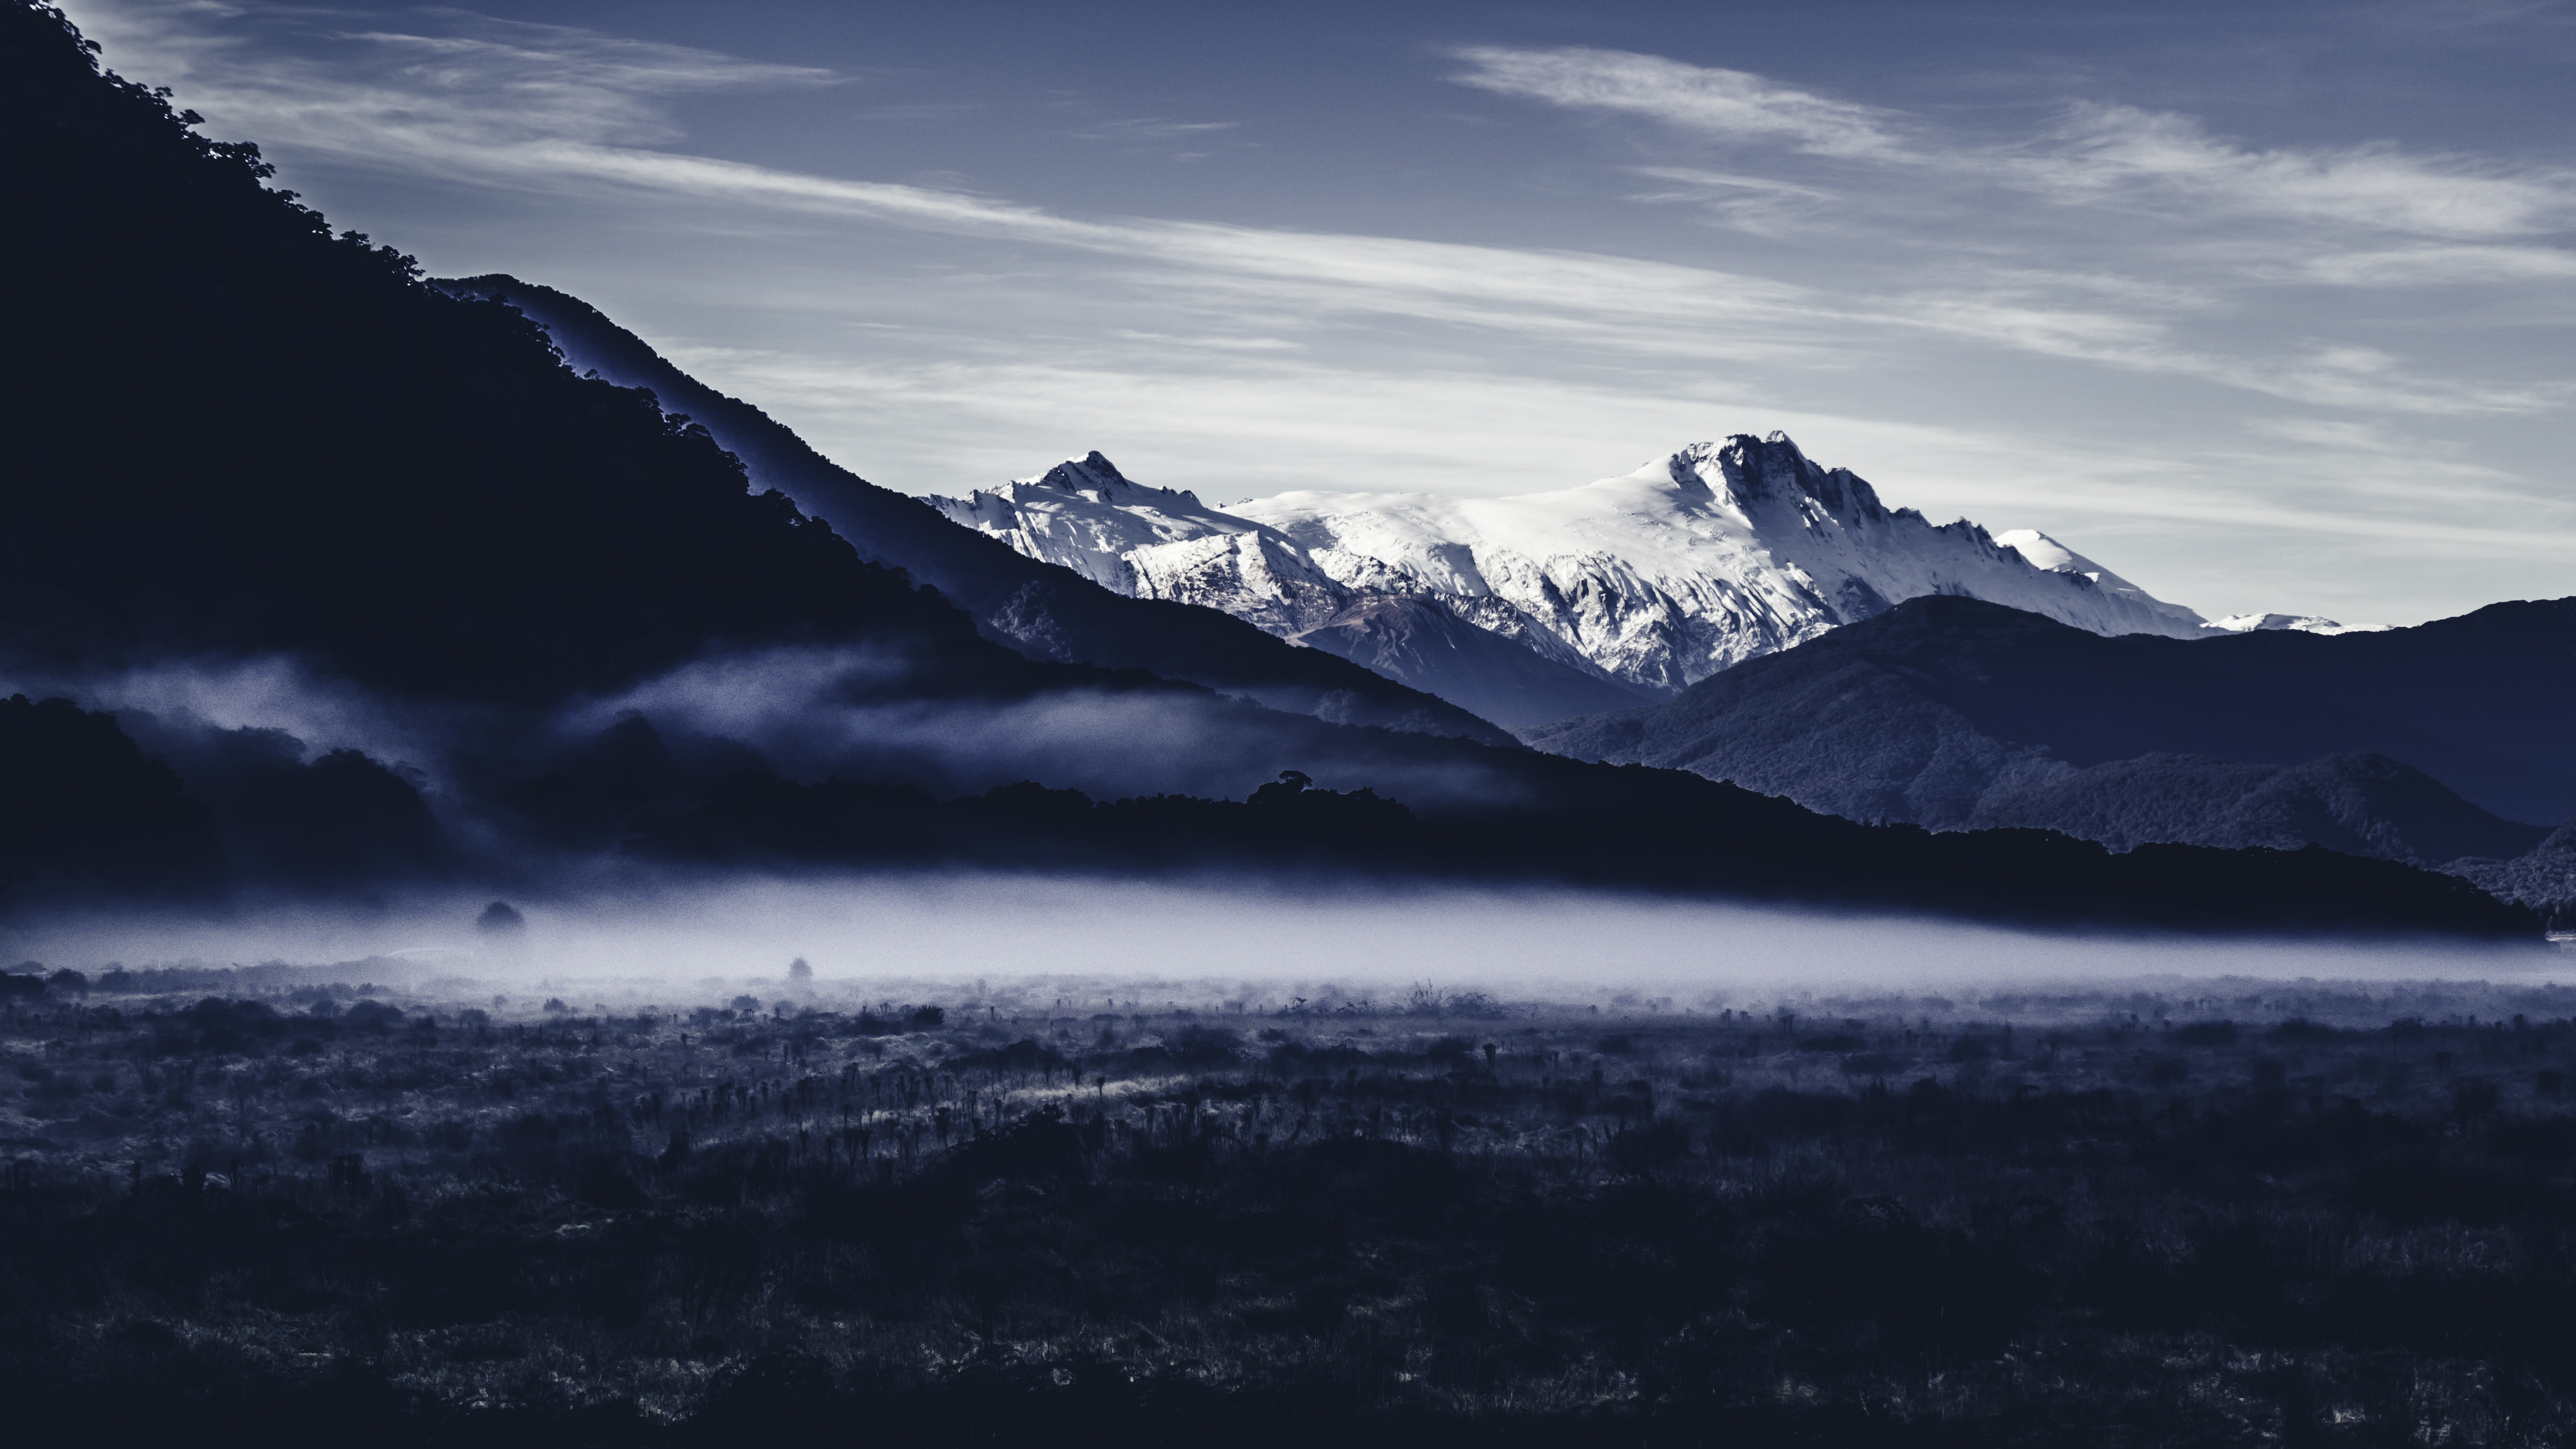 Mist on the valley beneath snowy mountains in a blue landscape